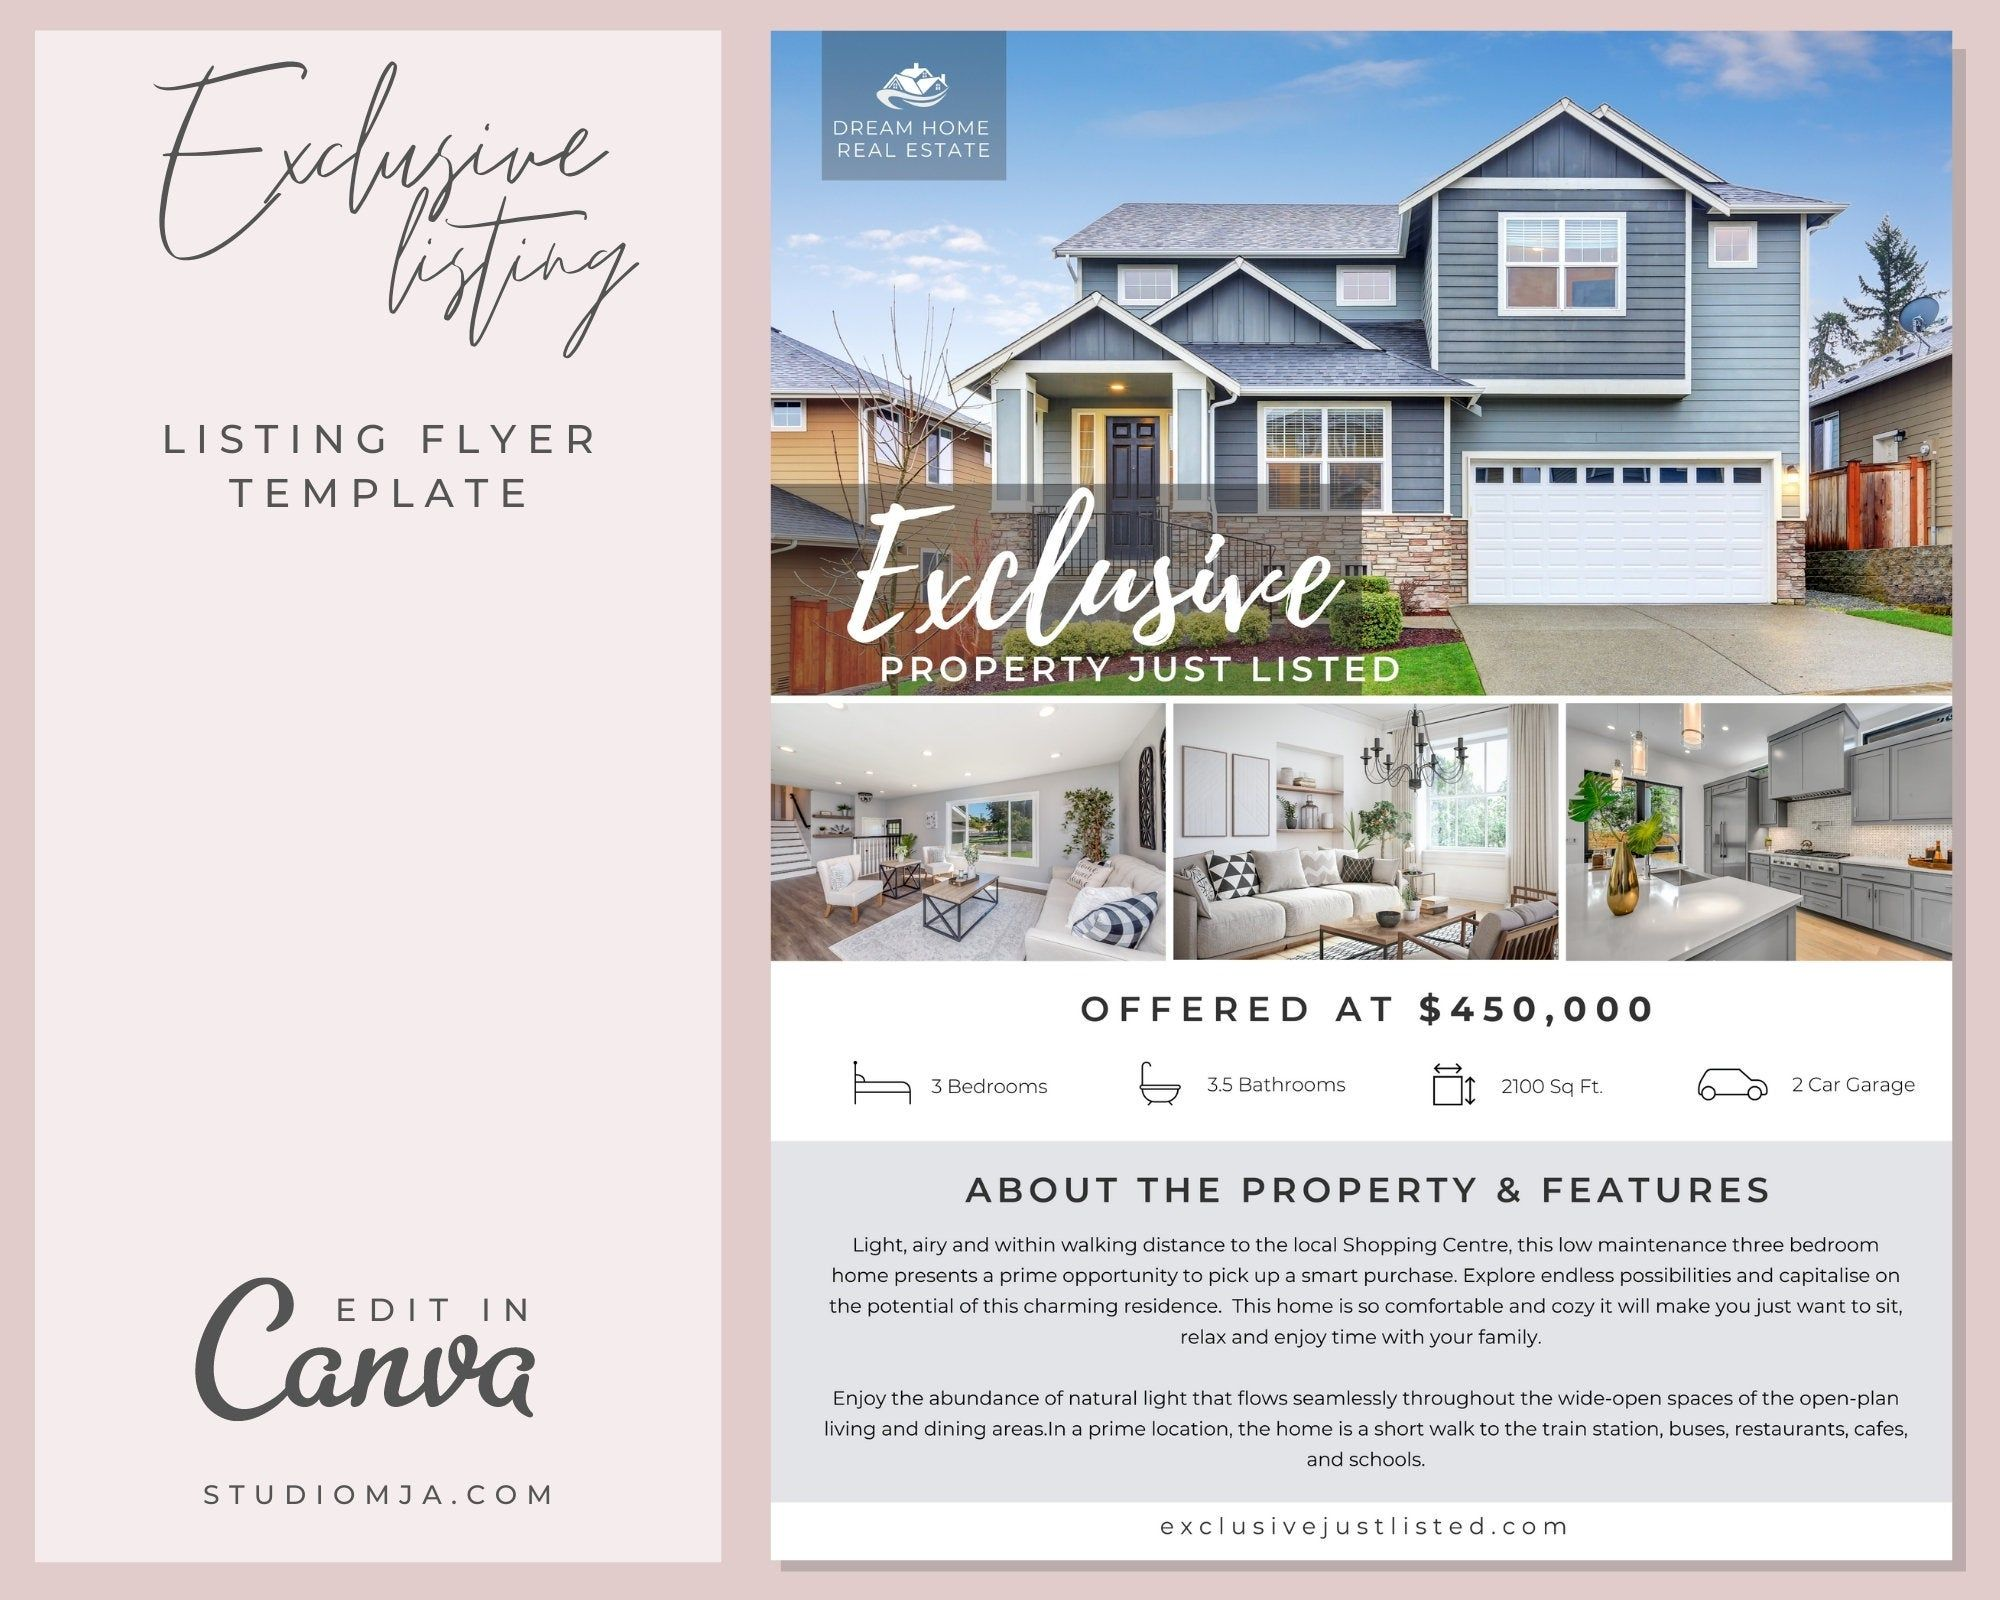 Pin On Real Estate Canva Templates